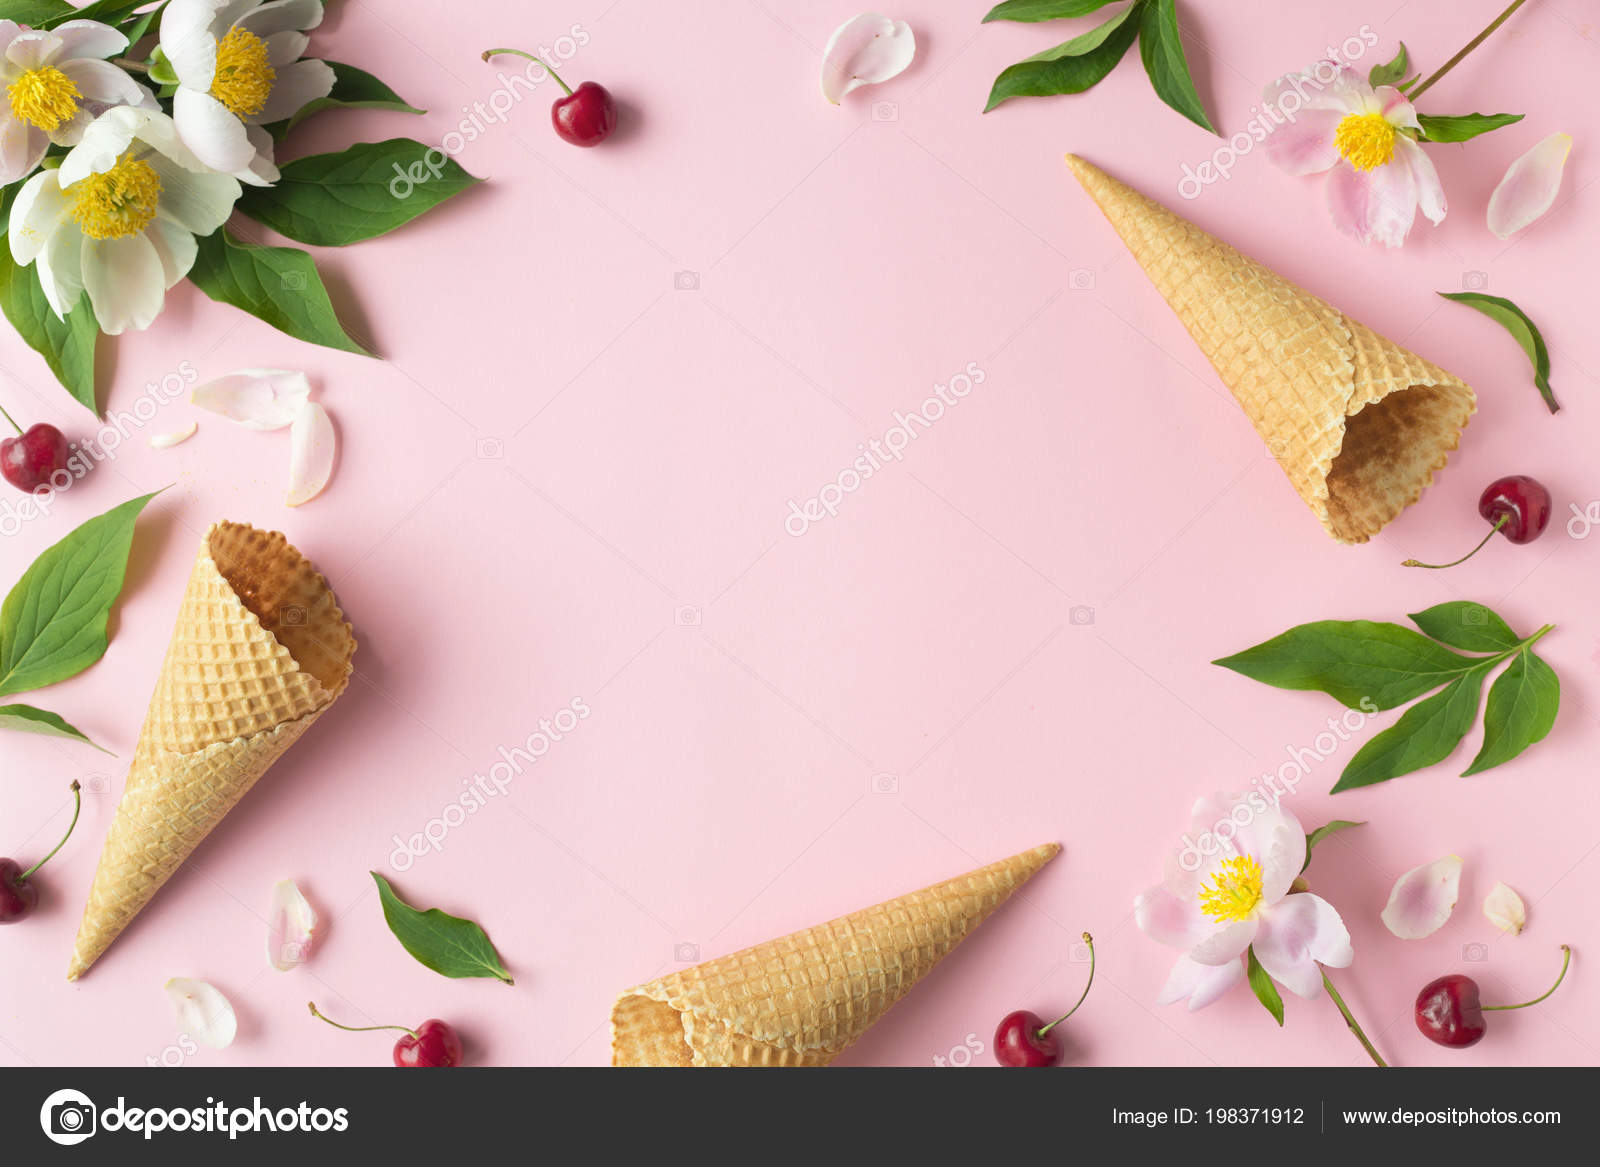 Flatlay Of Cerry Sweet Cones And Peonies Over Pastel Pink Background Top View With Space For Your Text Stock Photo C Nikadv Inbox Ru 198371912